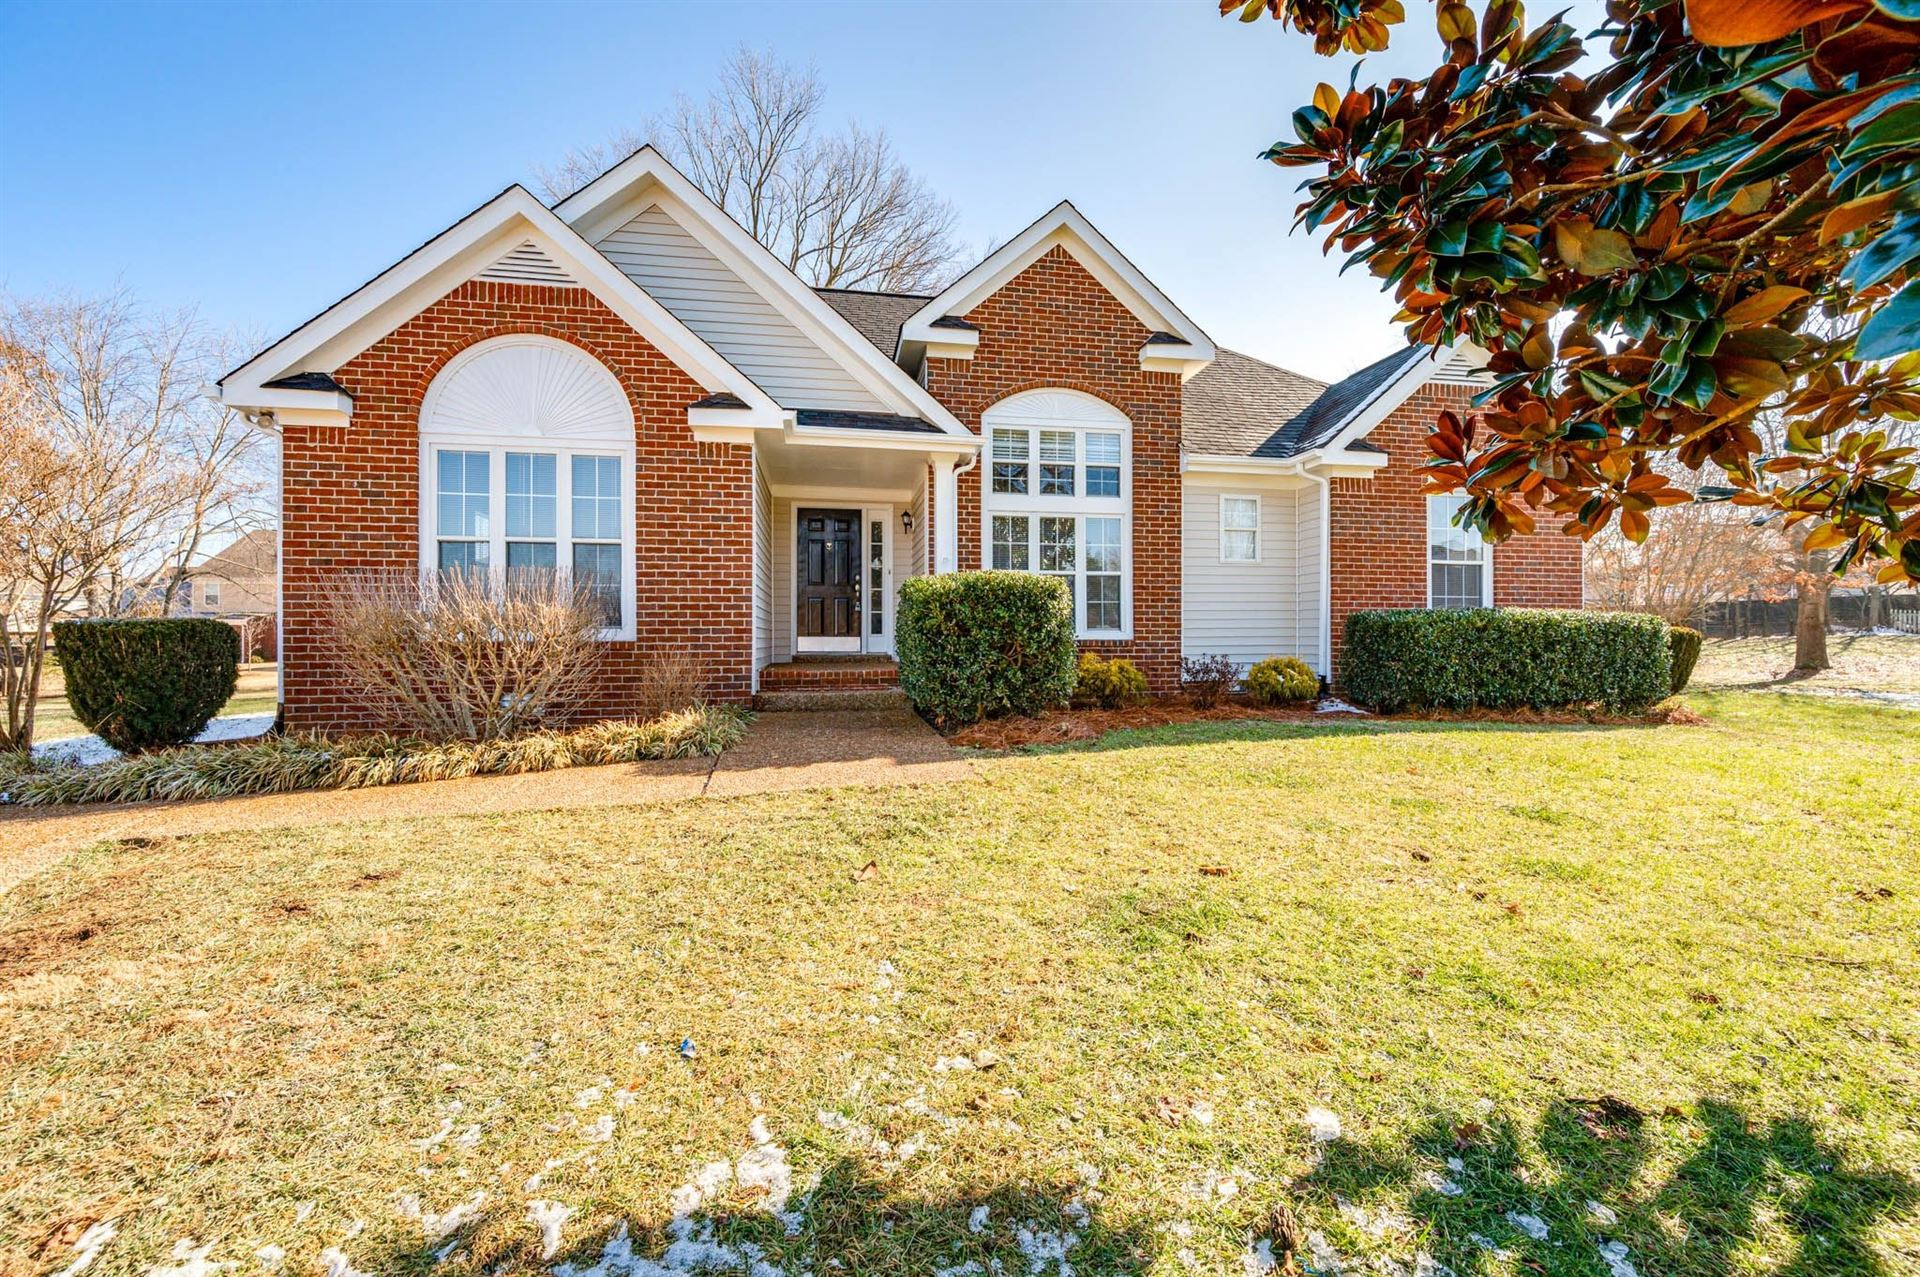 2838 Chase Pl, Thompsons Station, TN 37179 - MLS#: 2220321